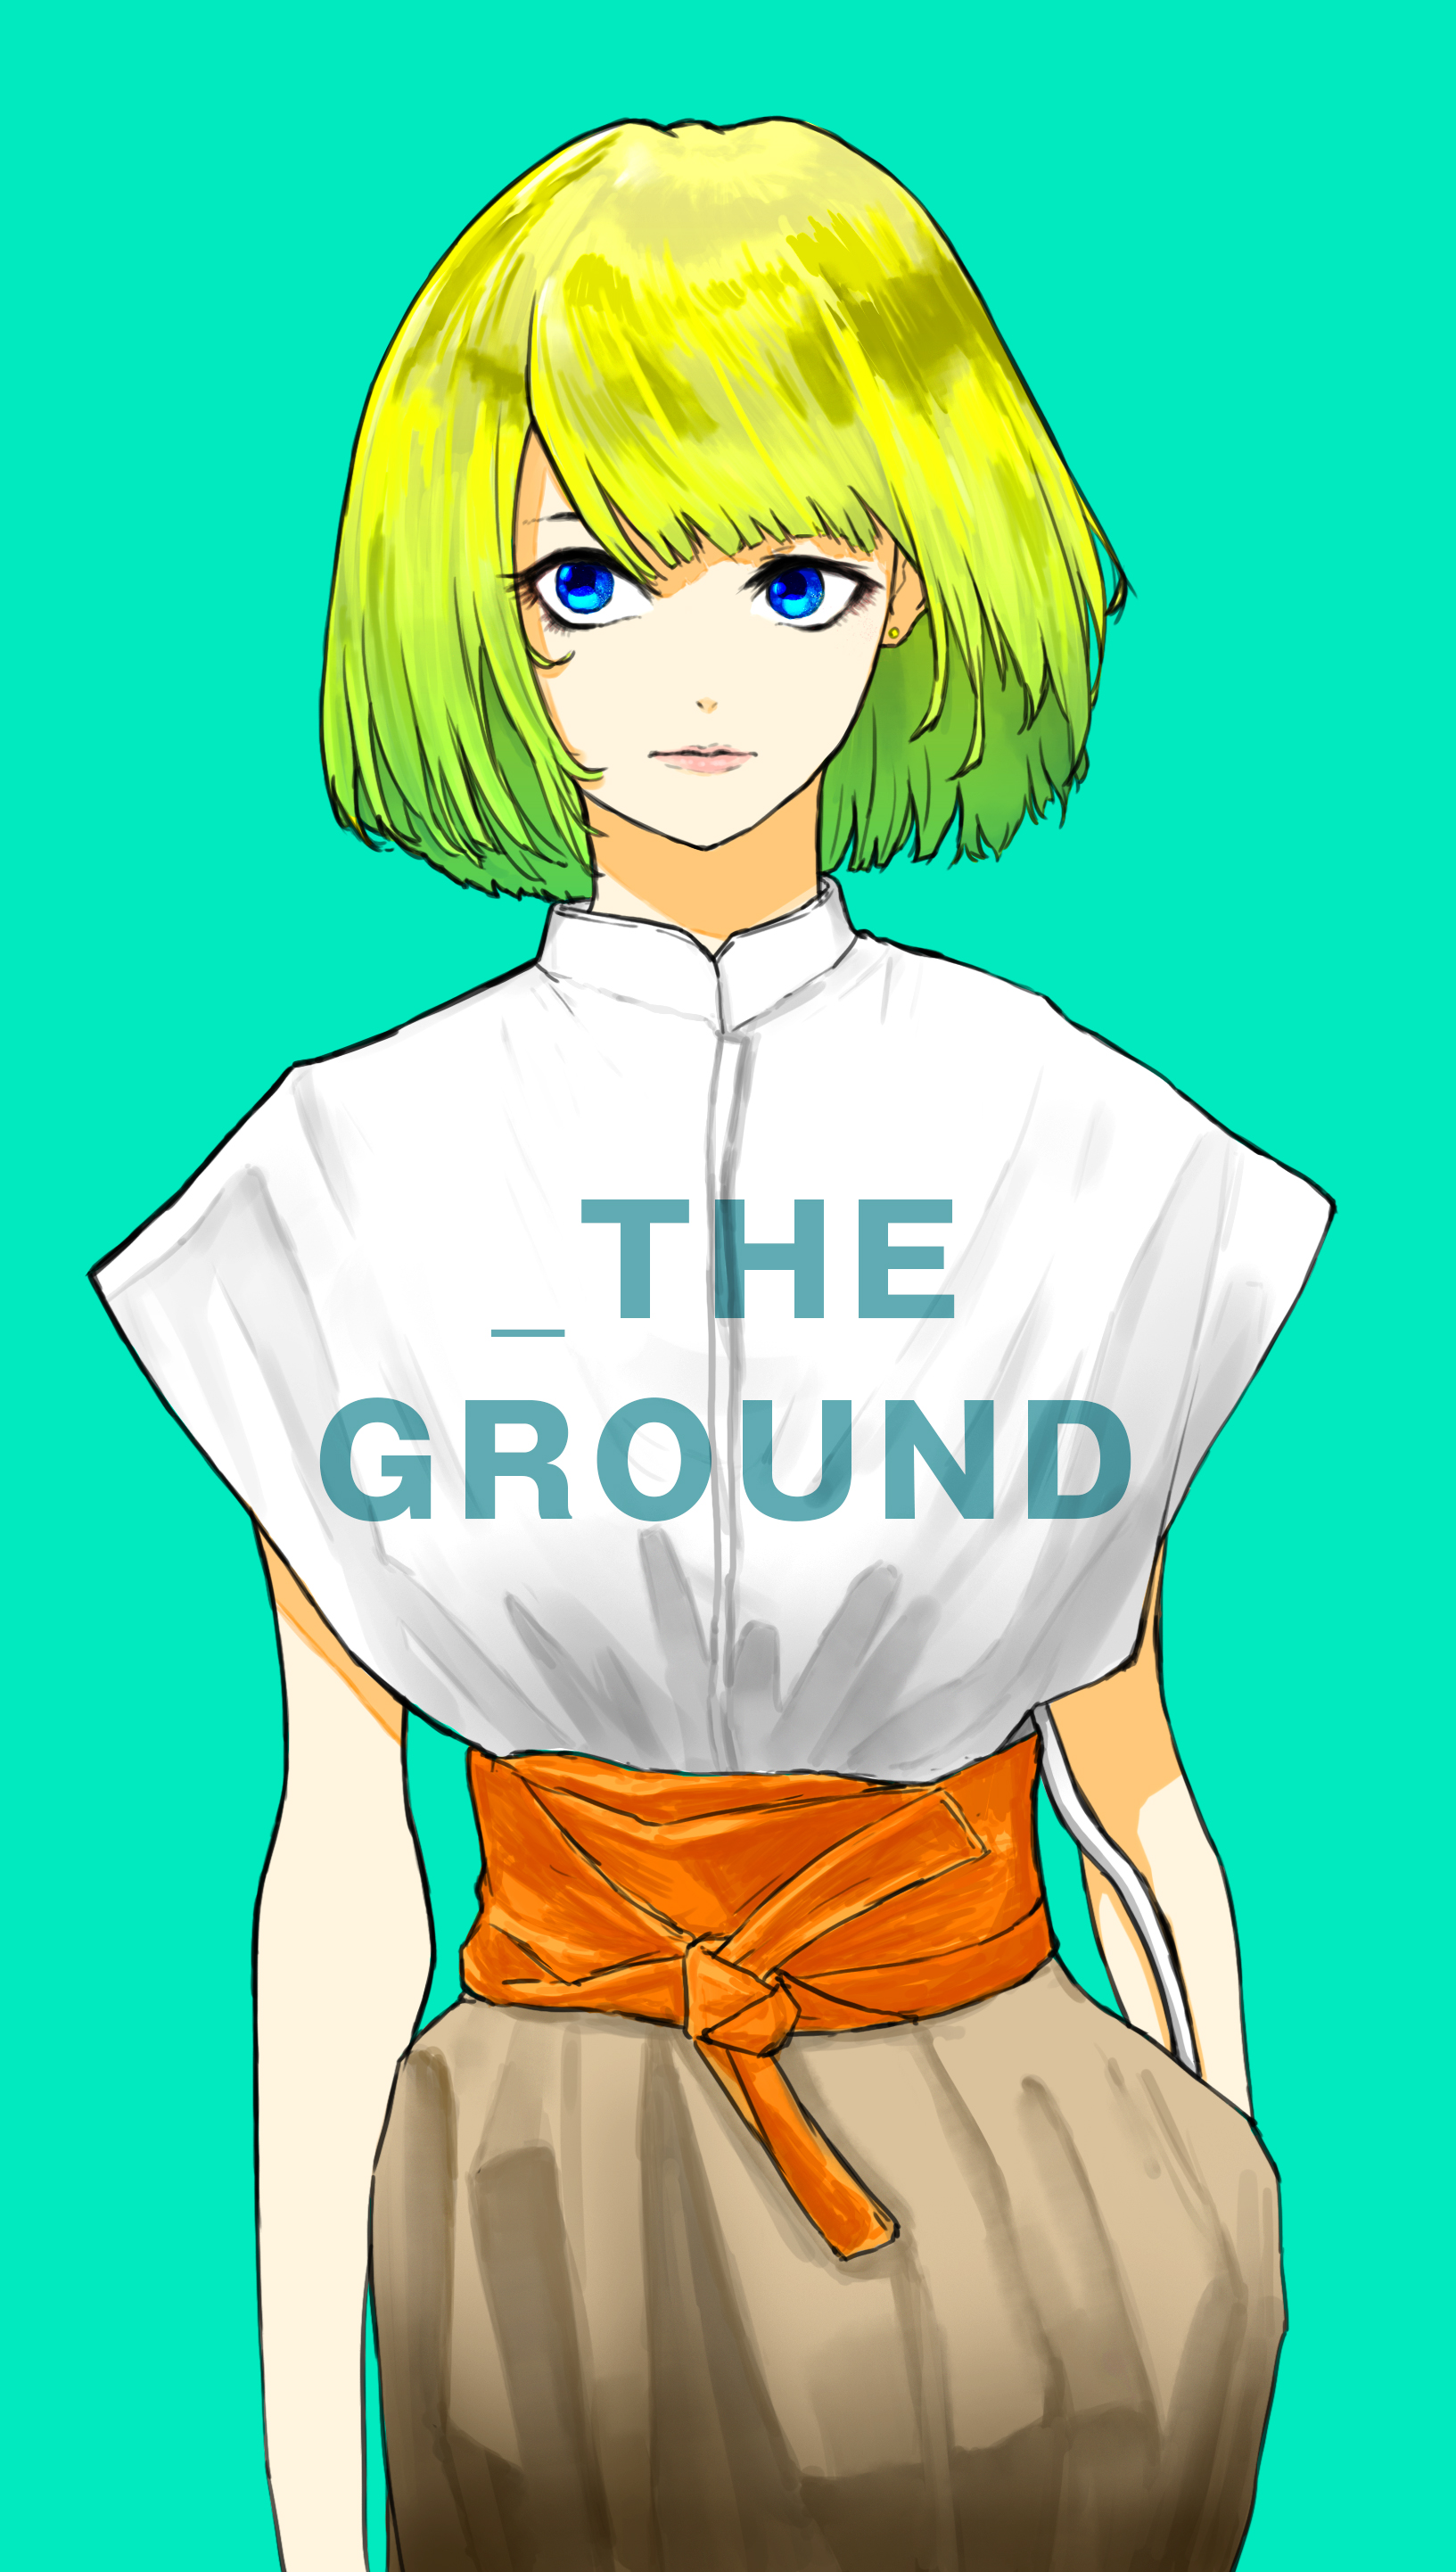 _THE GROUND